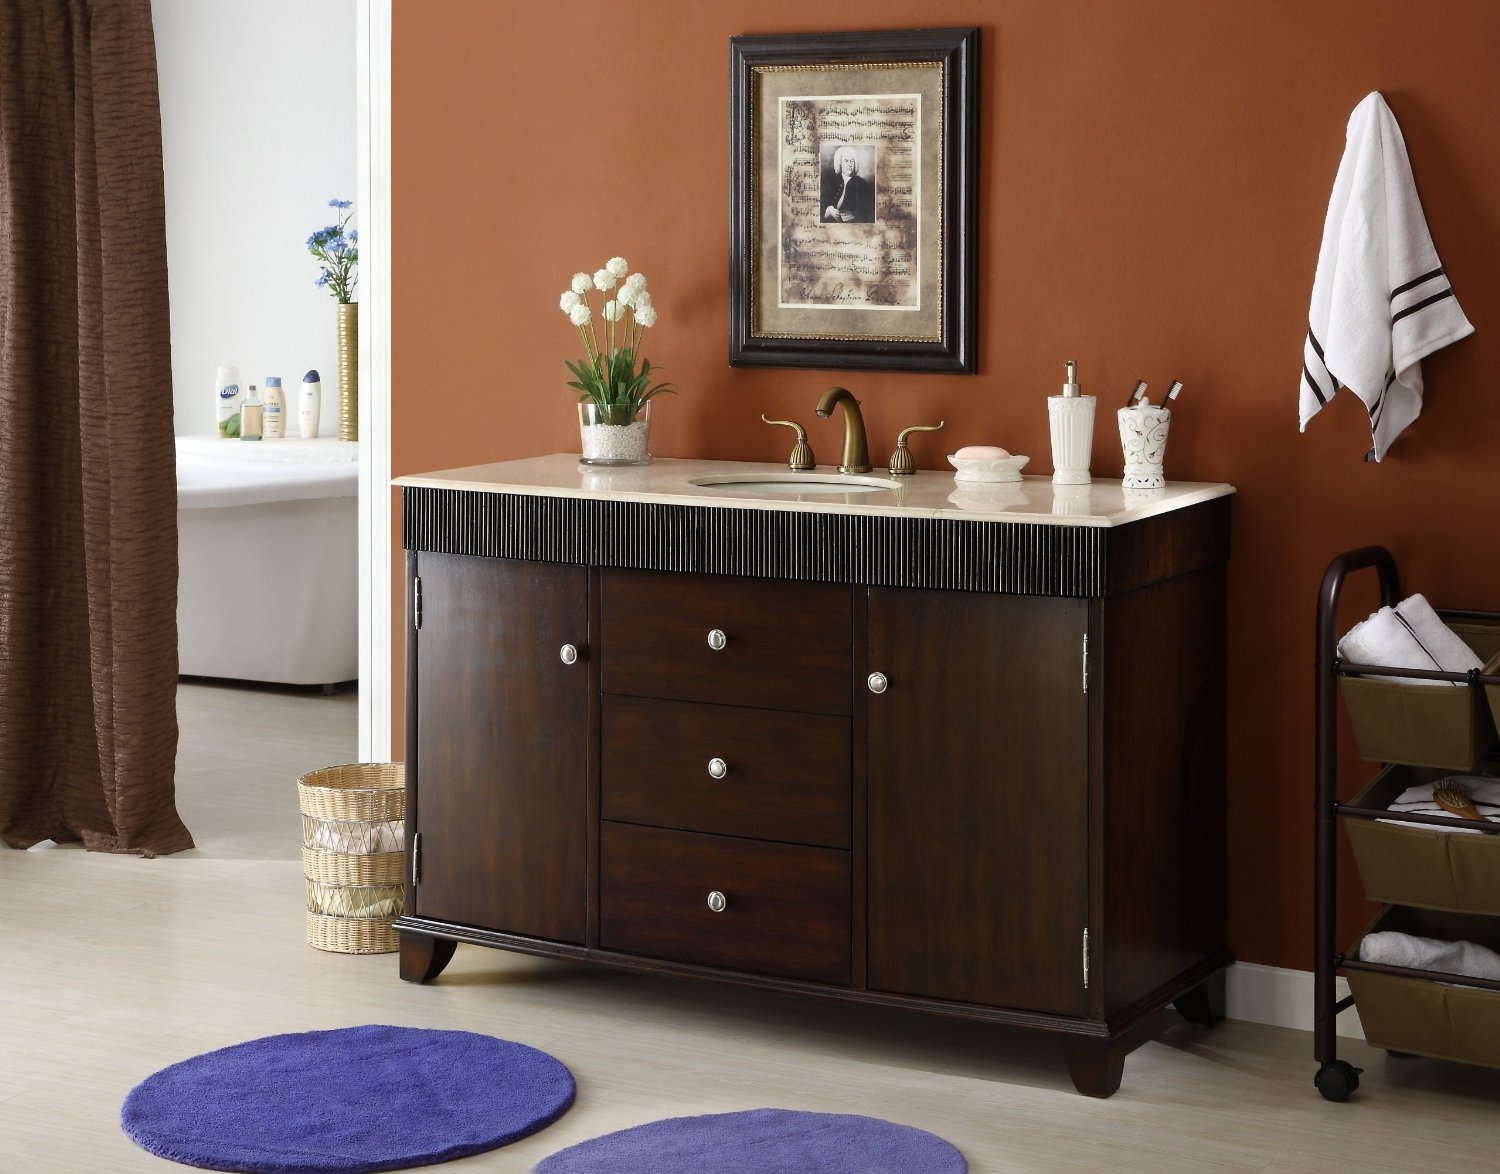 Permalink to 54 Inch Bathroom Vanity Cabinet